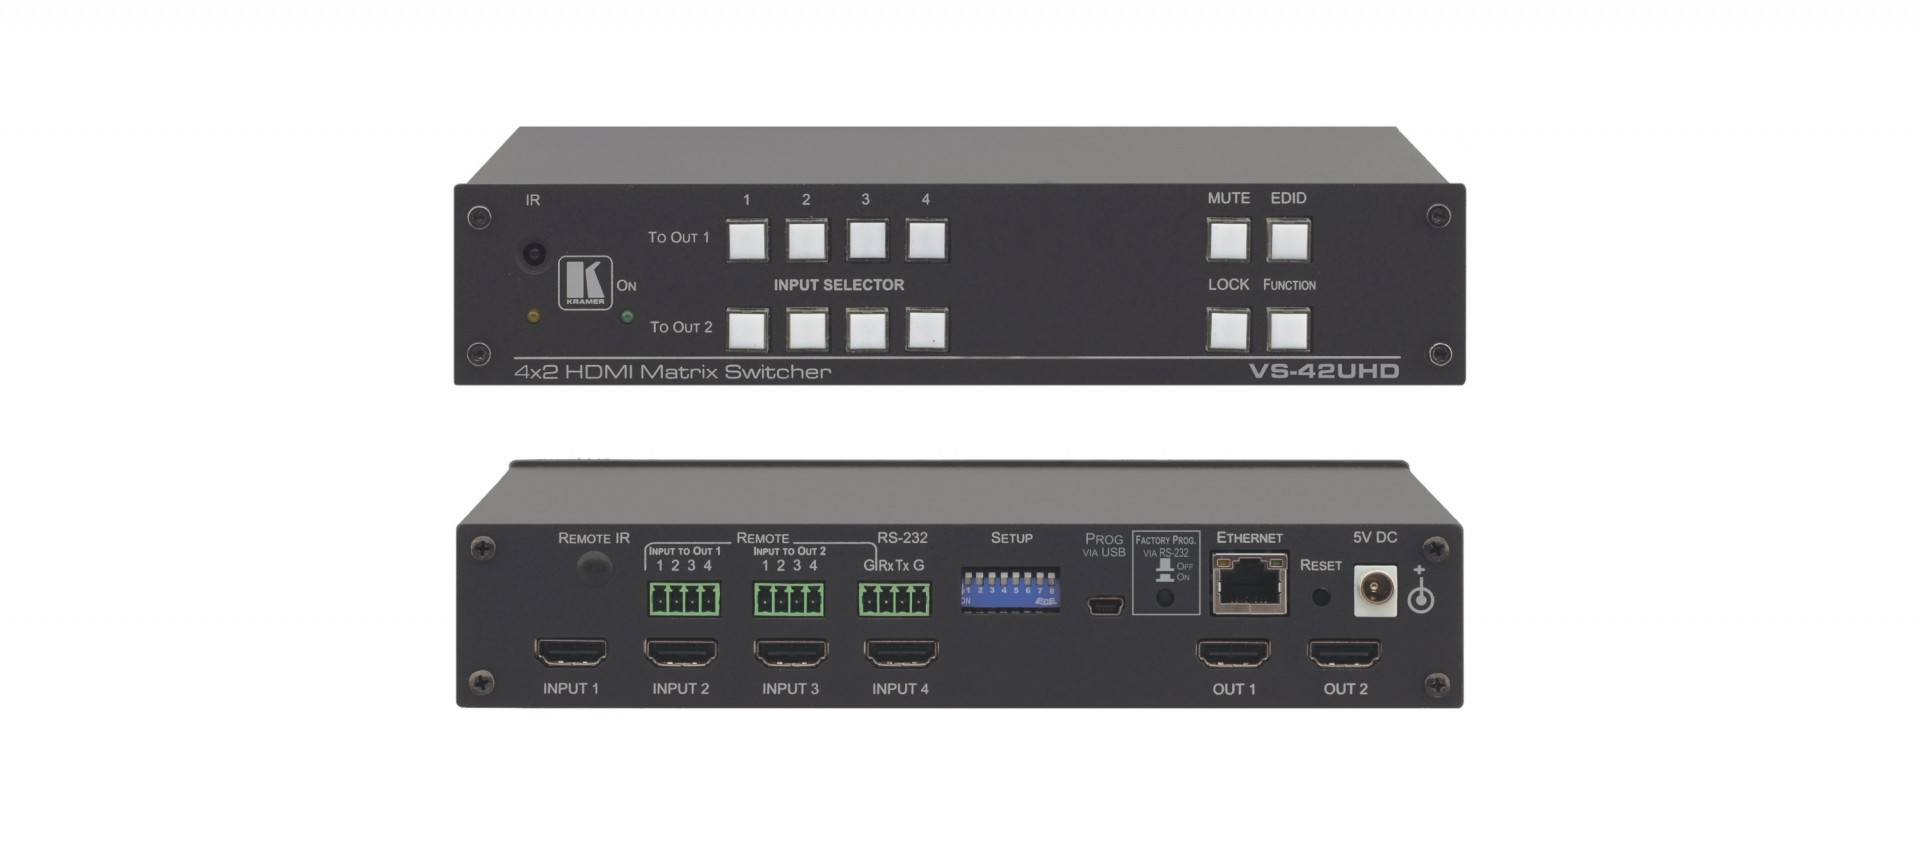 Kramer VS-42UHD 4x2 4K60 4:2:0 HDMI Automatic Matrix Switcher